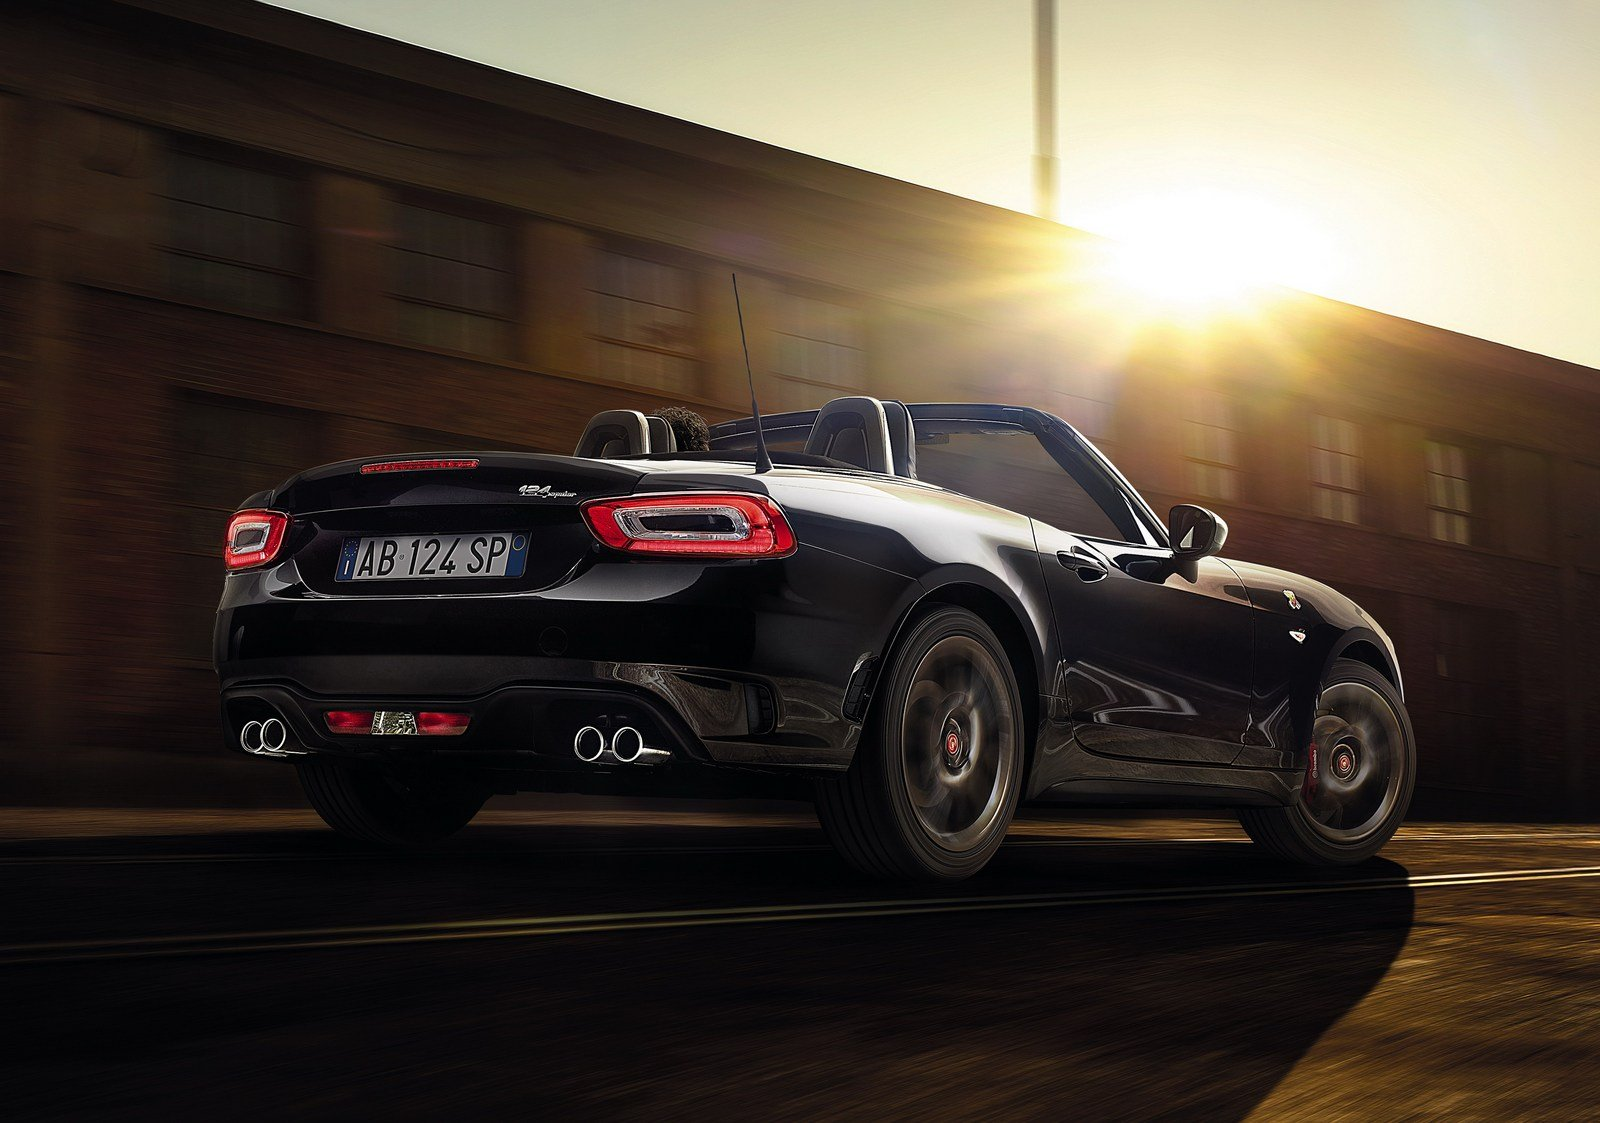 2017 abarth 124 spider scorpione picture 707259 car review top speed. Black Bedroom Furniture Sets. Home Design Ideas